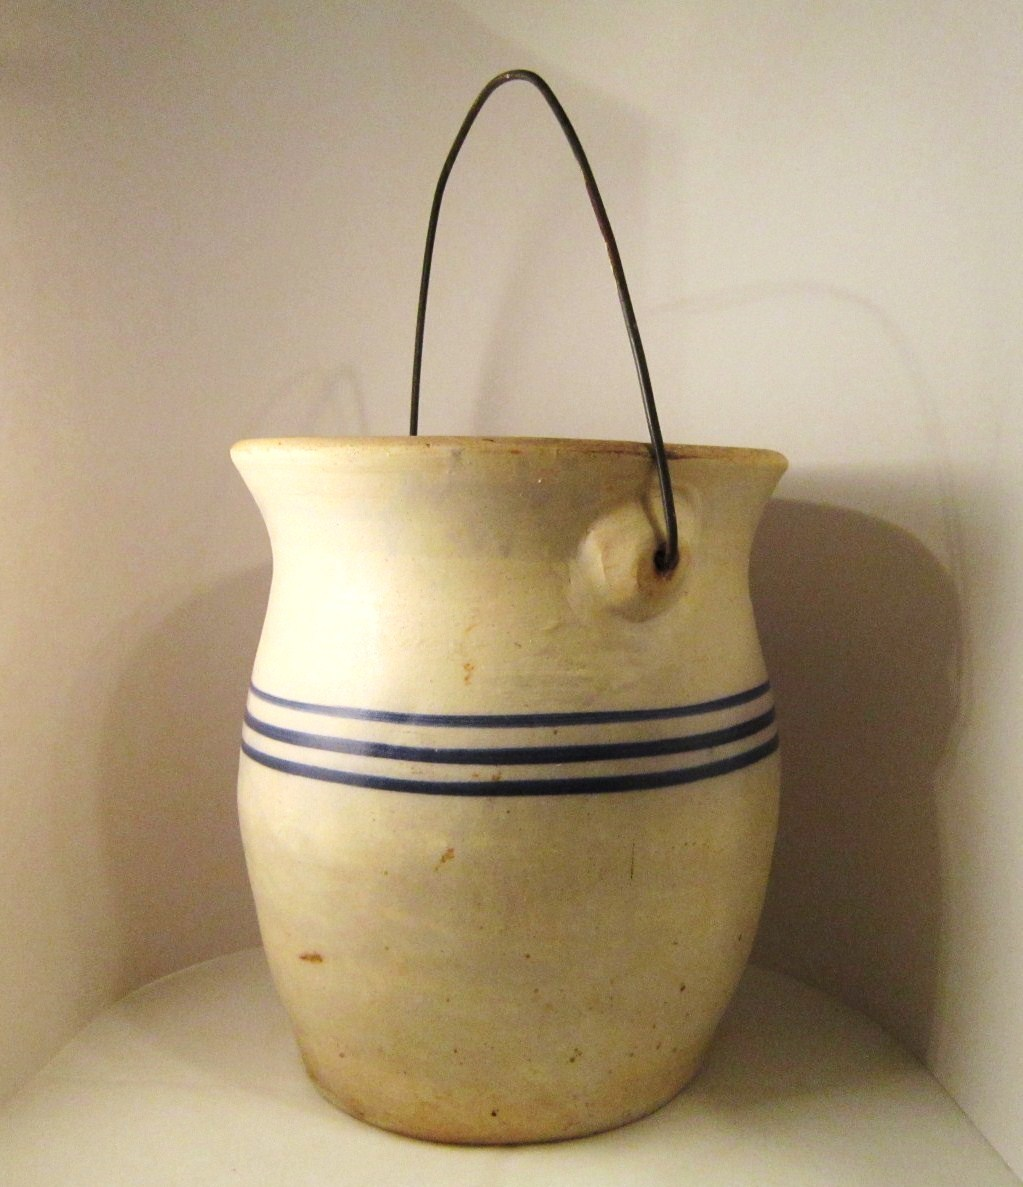 Stoneware Crock, Blue Stripes and Bail, 10 inch tall, Heavy